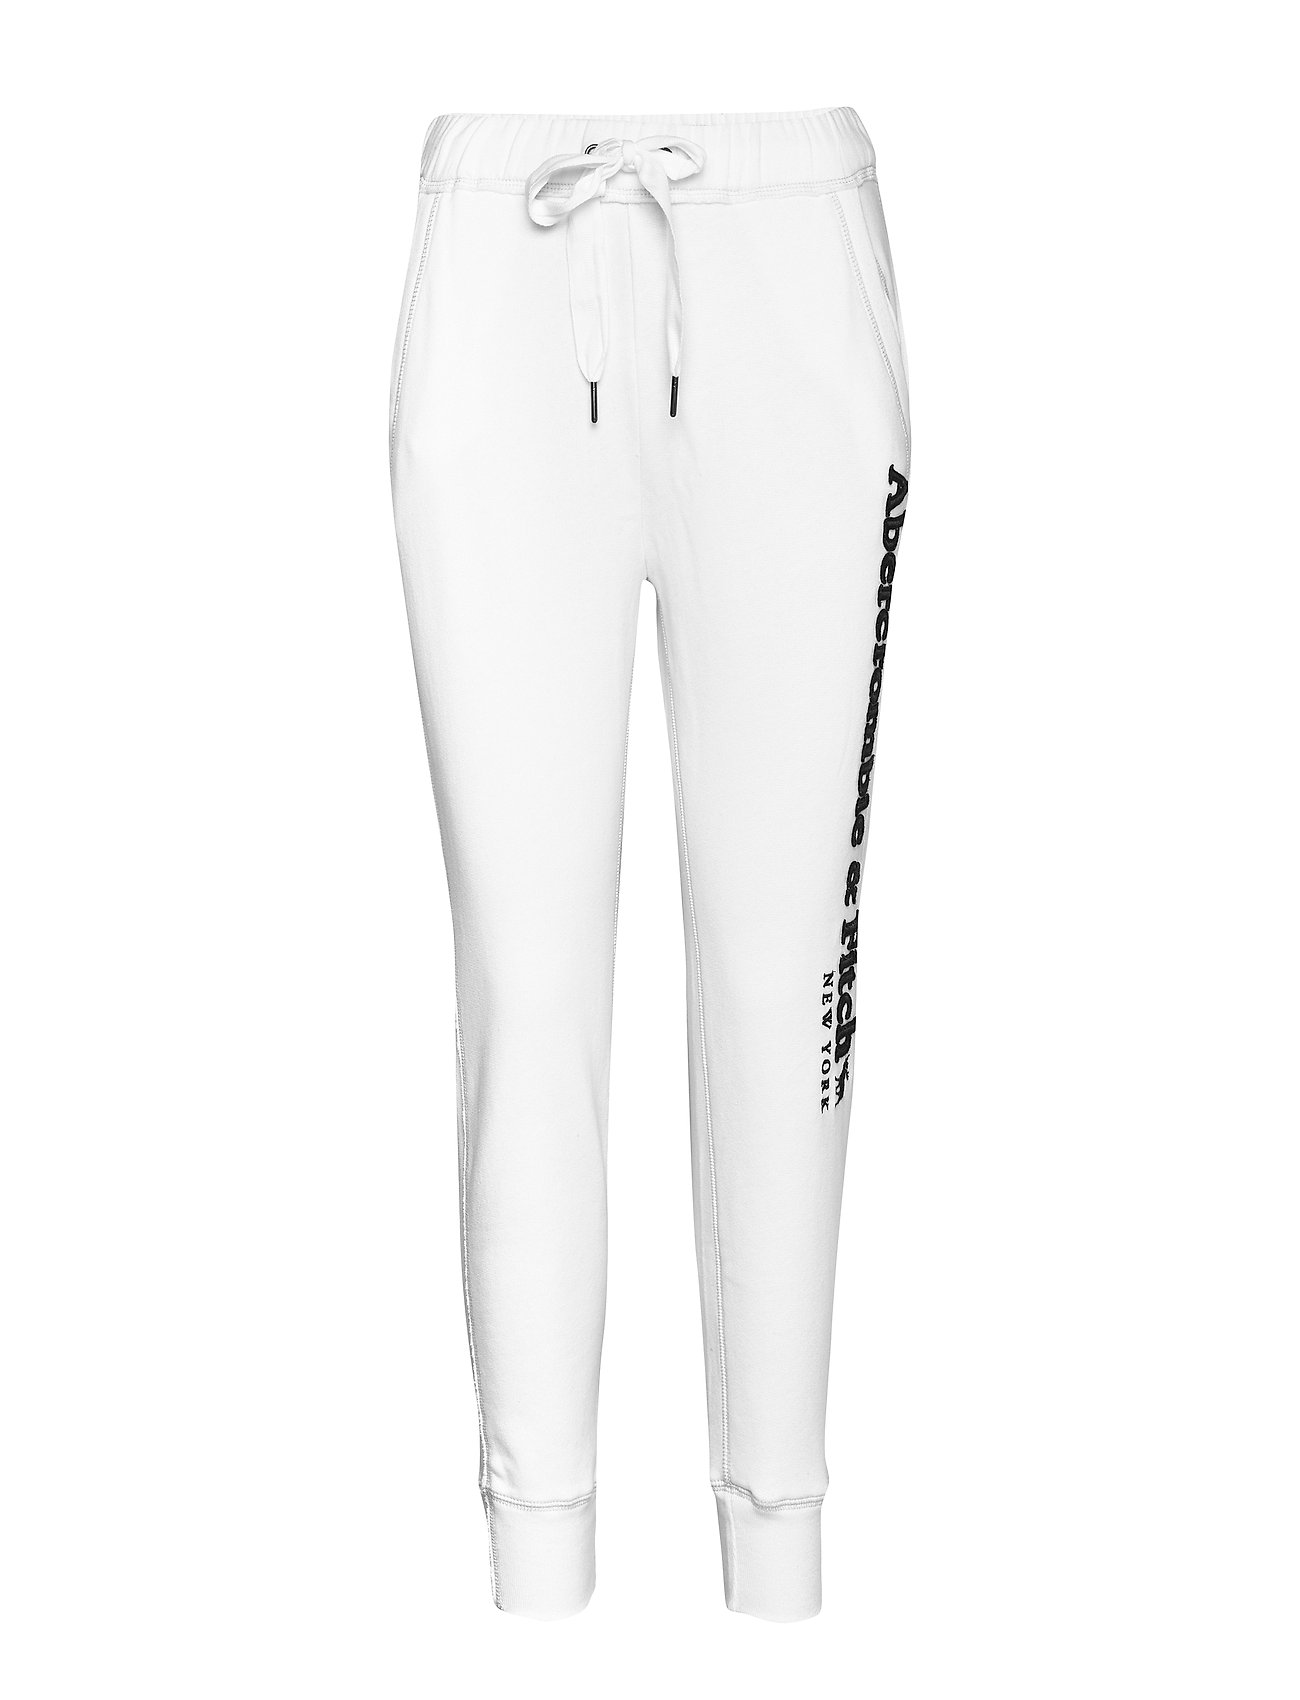 Abercrombie & Fitch Long Life Ext - WHITE